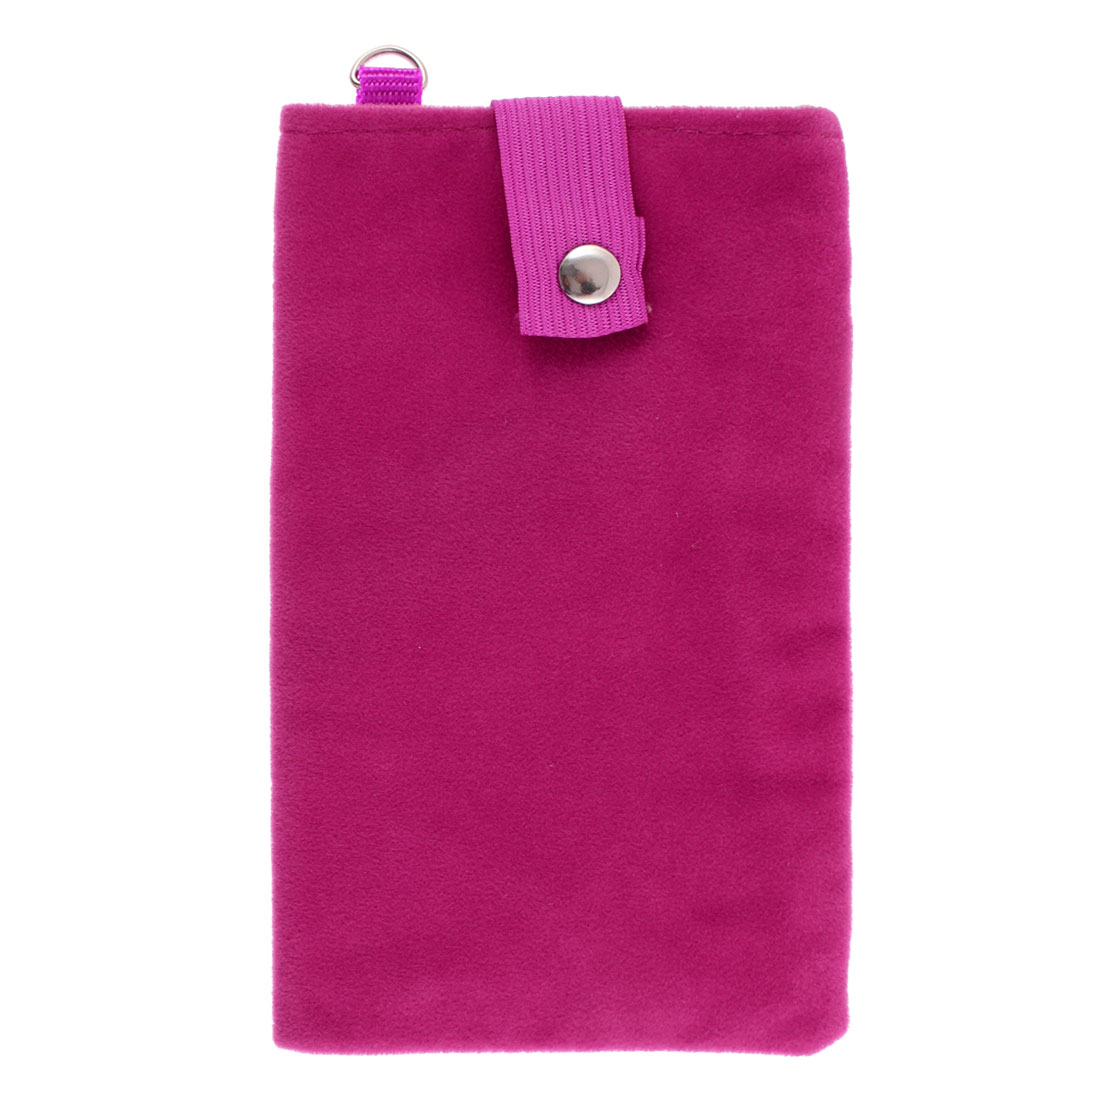 Velvet Magnetic Clasp Button Cell Phone Pouch Sleeve Bag Fuschia 16x9.5cm